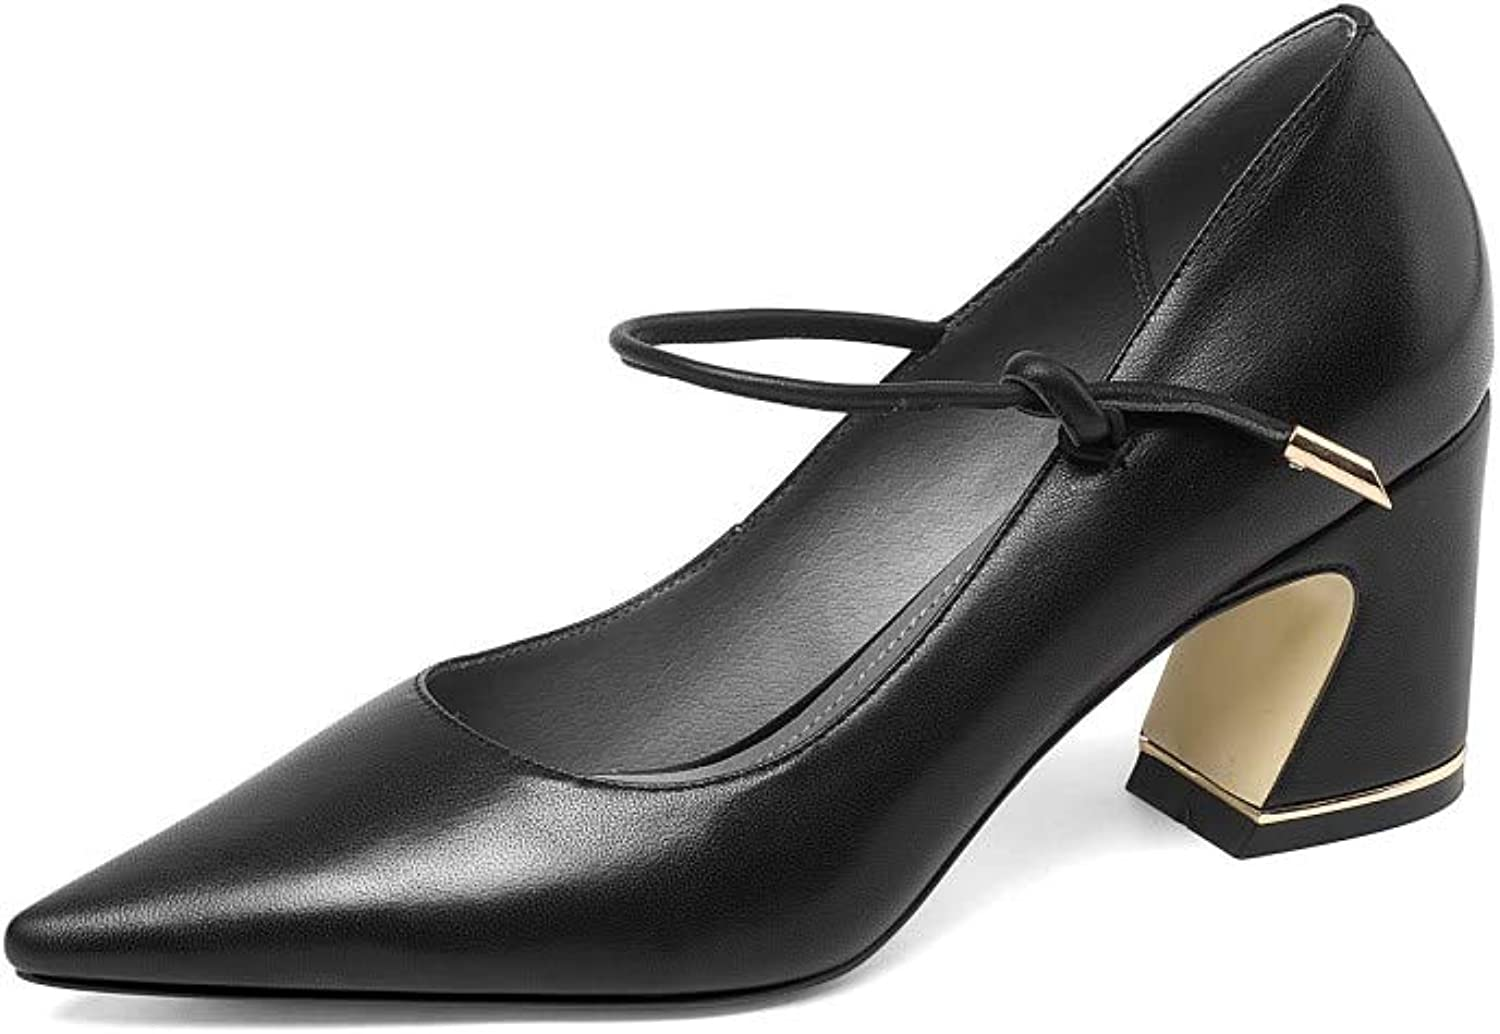 Nine Seven Women's Genuine Leather Pointed Toe Mid Chunky Heel Handmade Casual Office Work Mary Jane Pumps